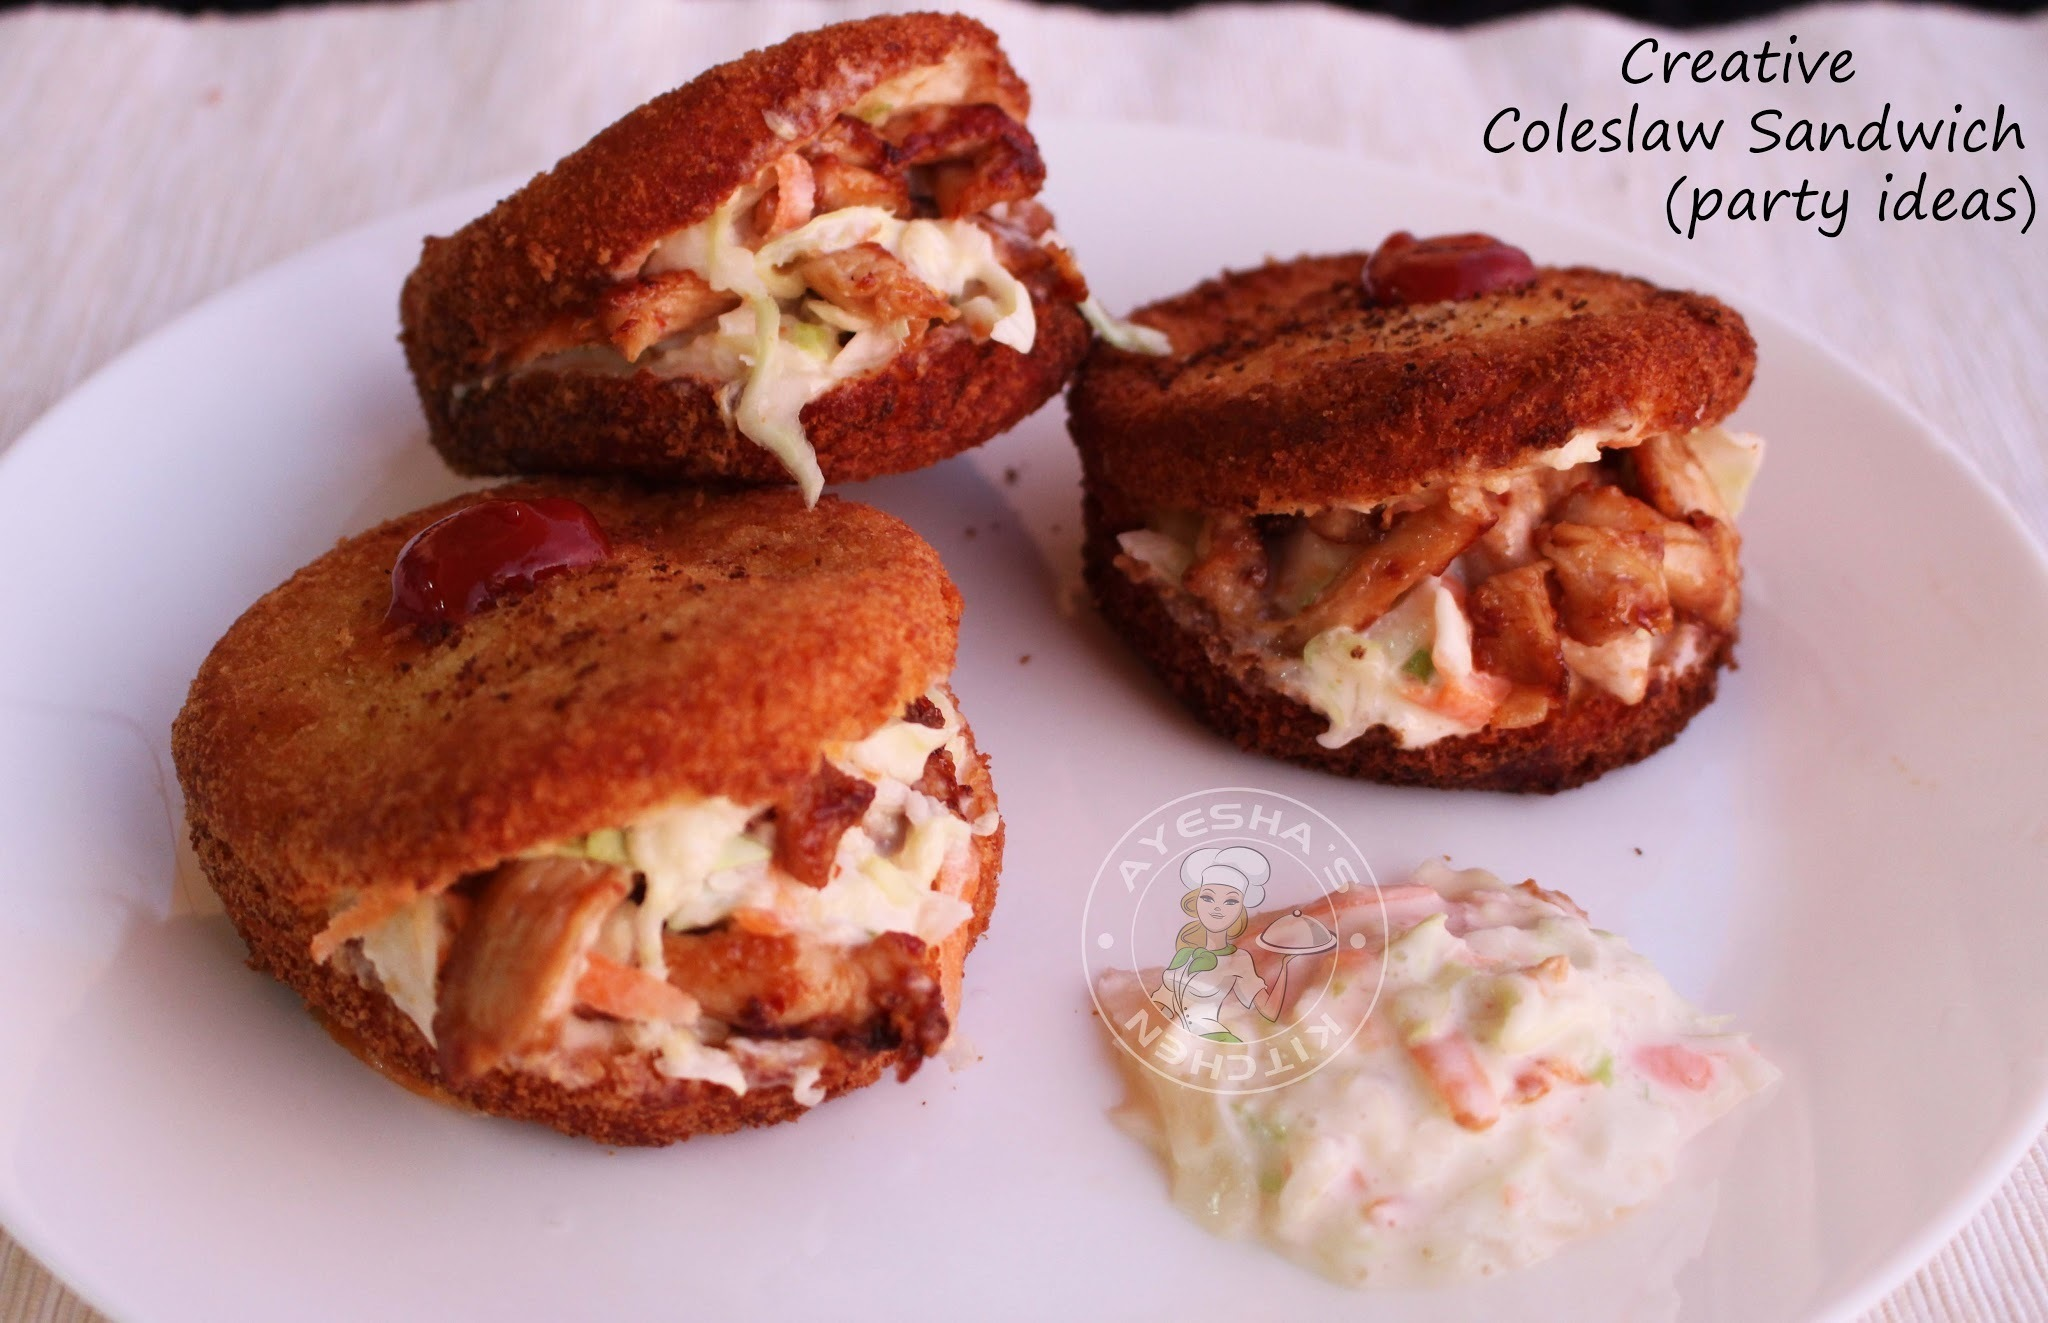 CREATIVE PARTY SNACK IDEAS - COLESLAW SANDWICH